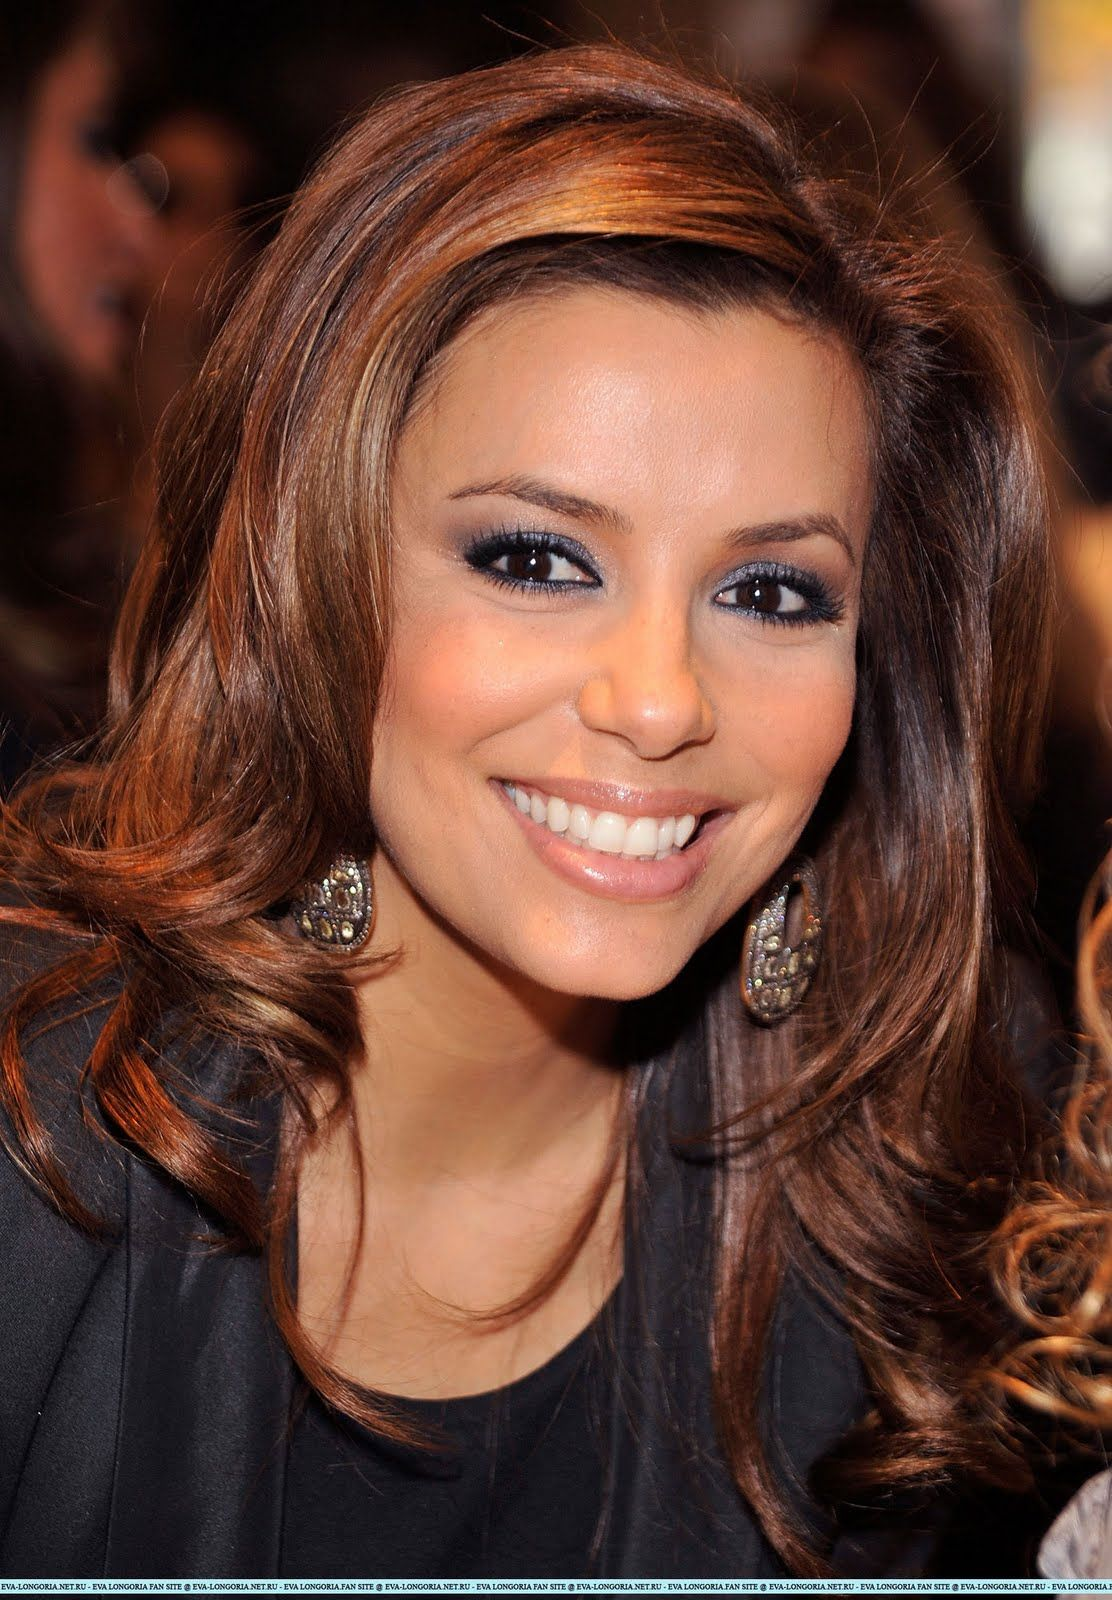 Eva Longoria Hairstyles Eva Longoria Love The Hair Color  Peinados  Pinterest  Eva